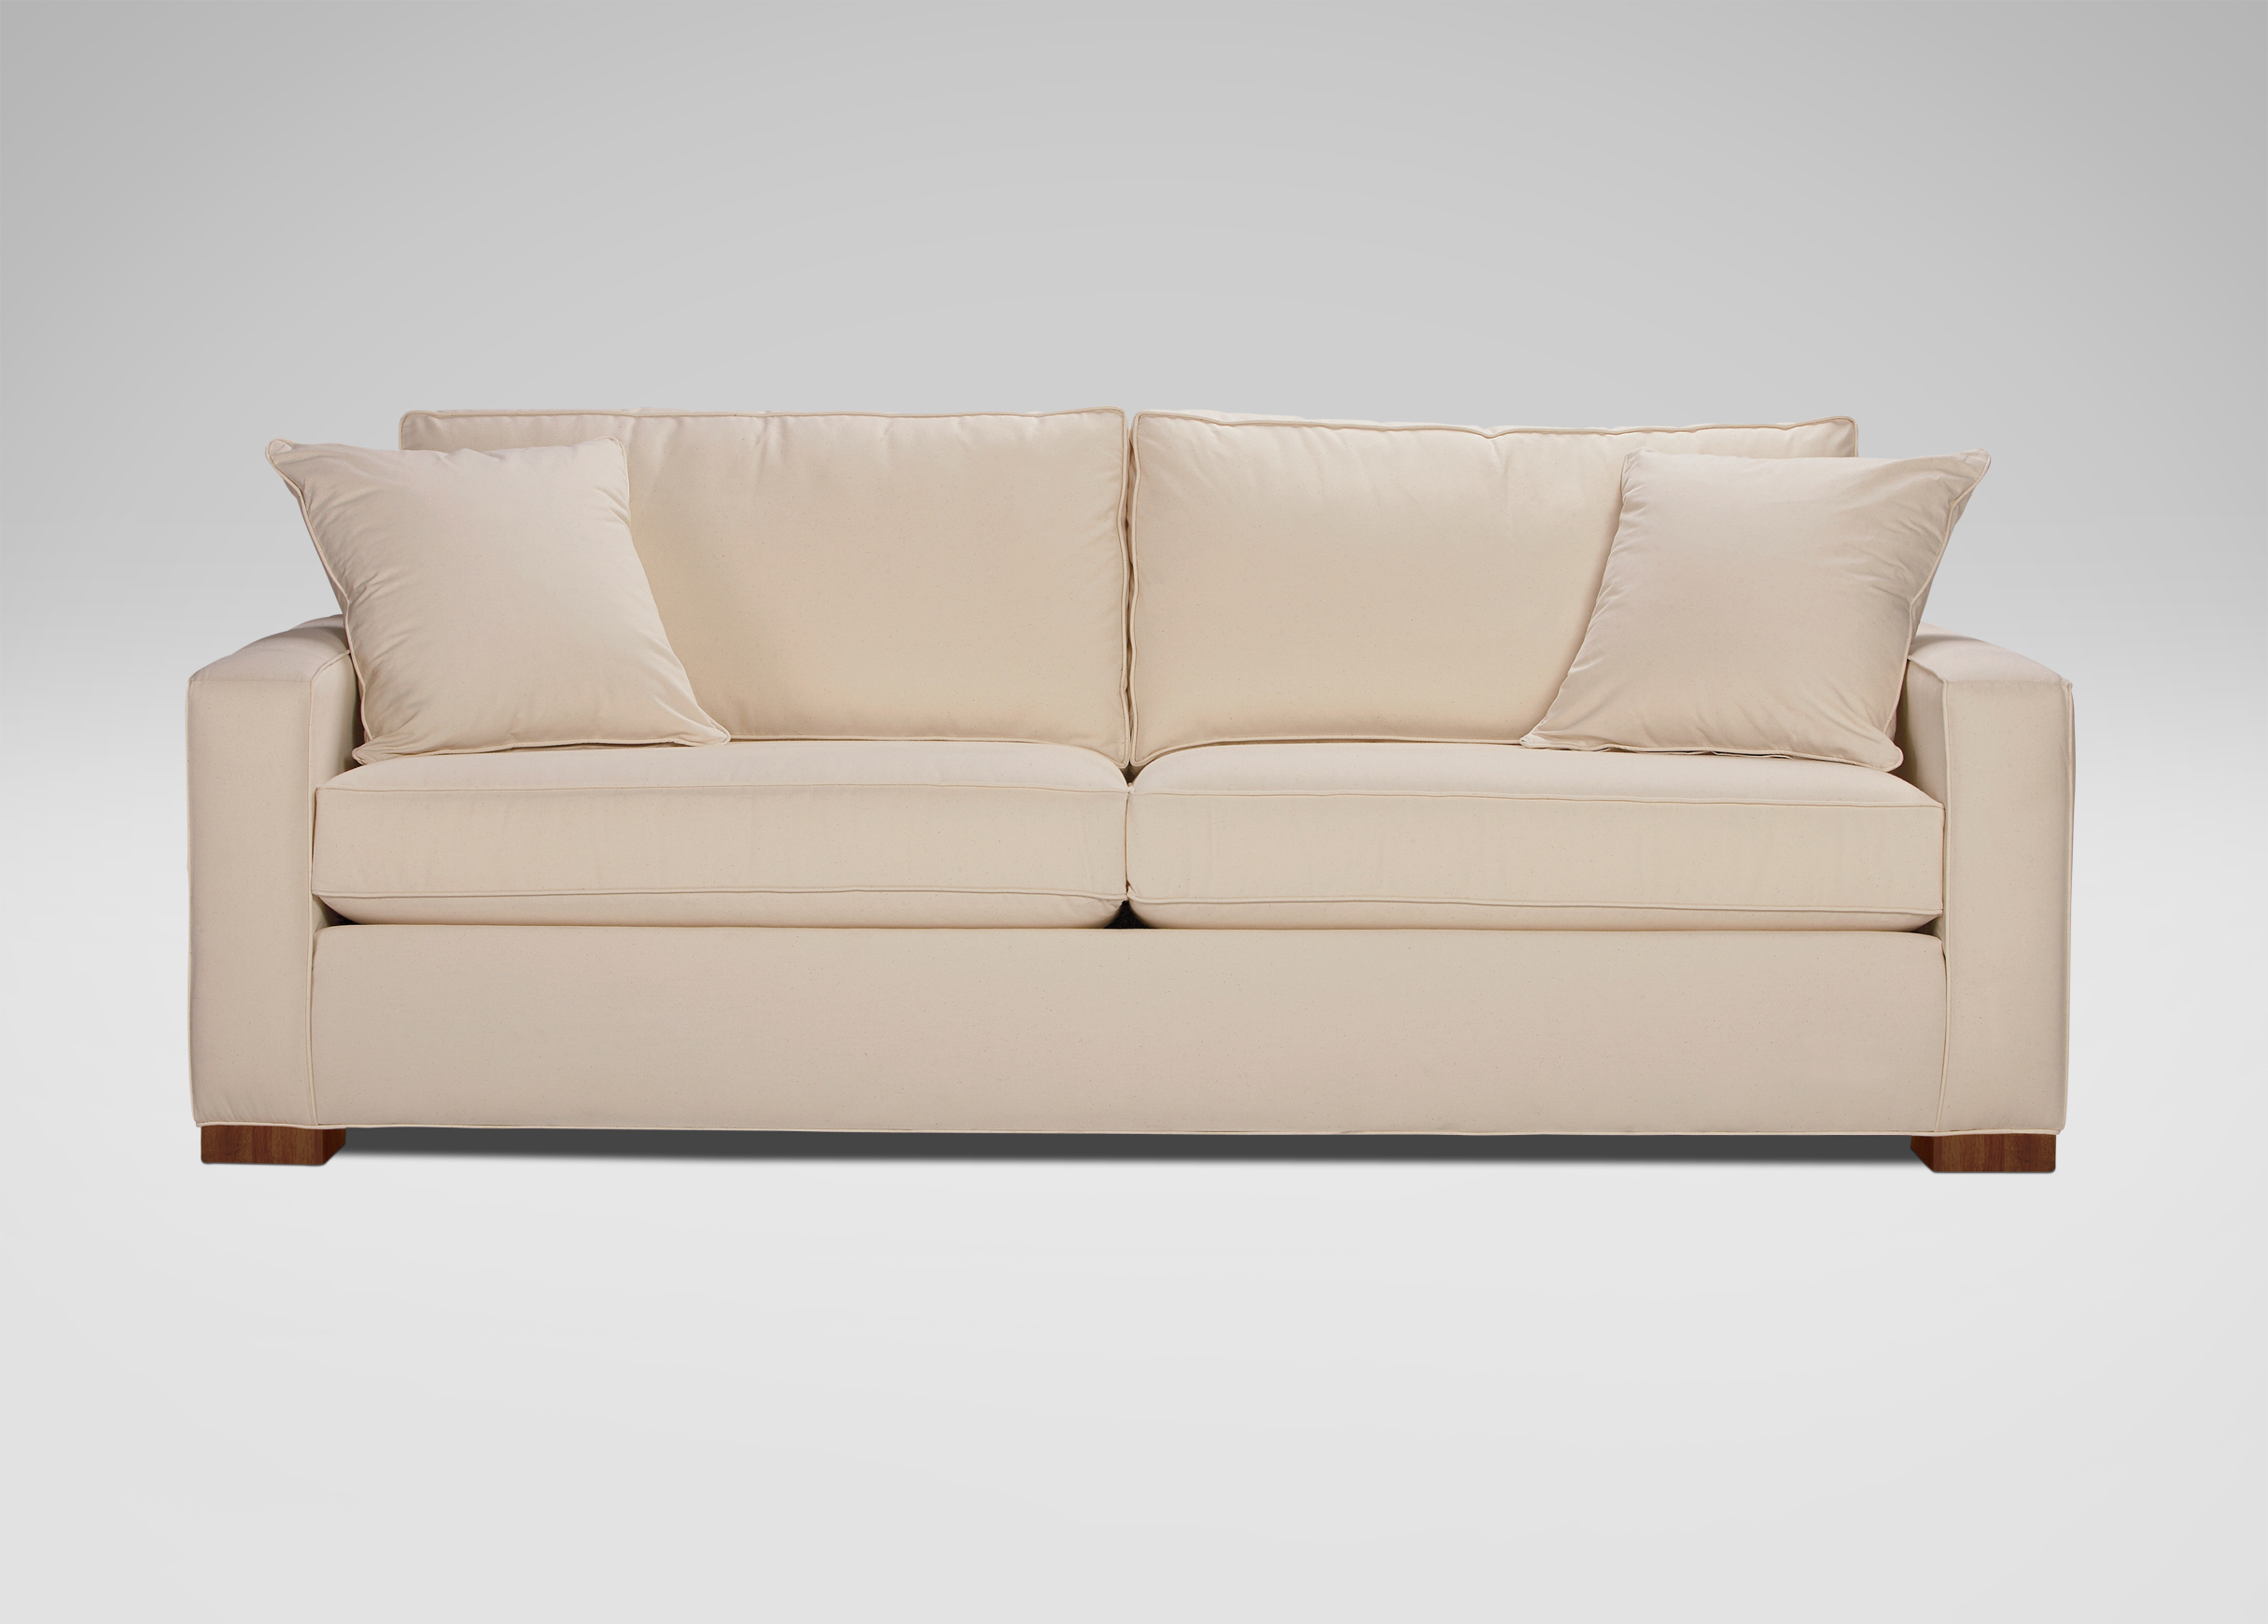 25 Luxury Ethan Allen Sectional Sofa Slipcovers With Well Liked Harper Foam 3 Piece Sectionals With Raf Chaise (View 13 of 20)